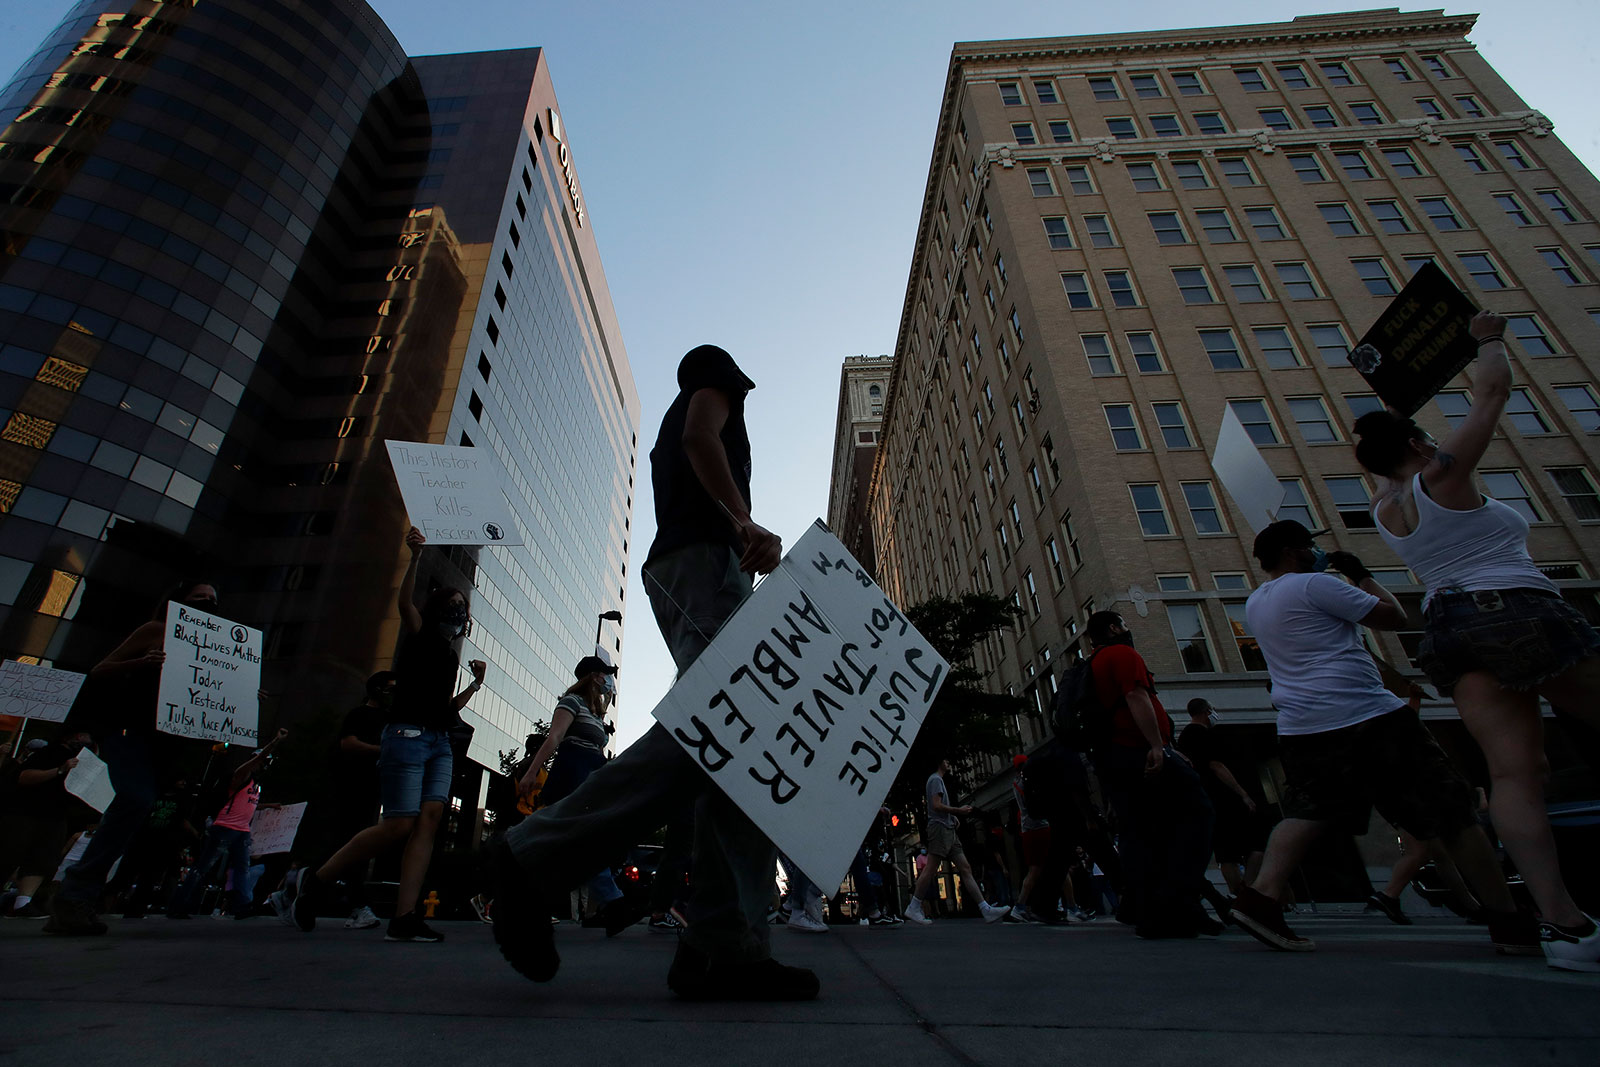 Demonstrators march in downtown Tulsa on Saturday evening.